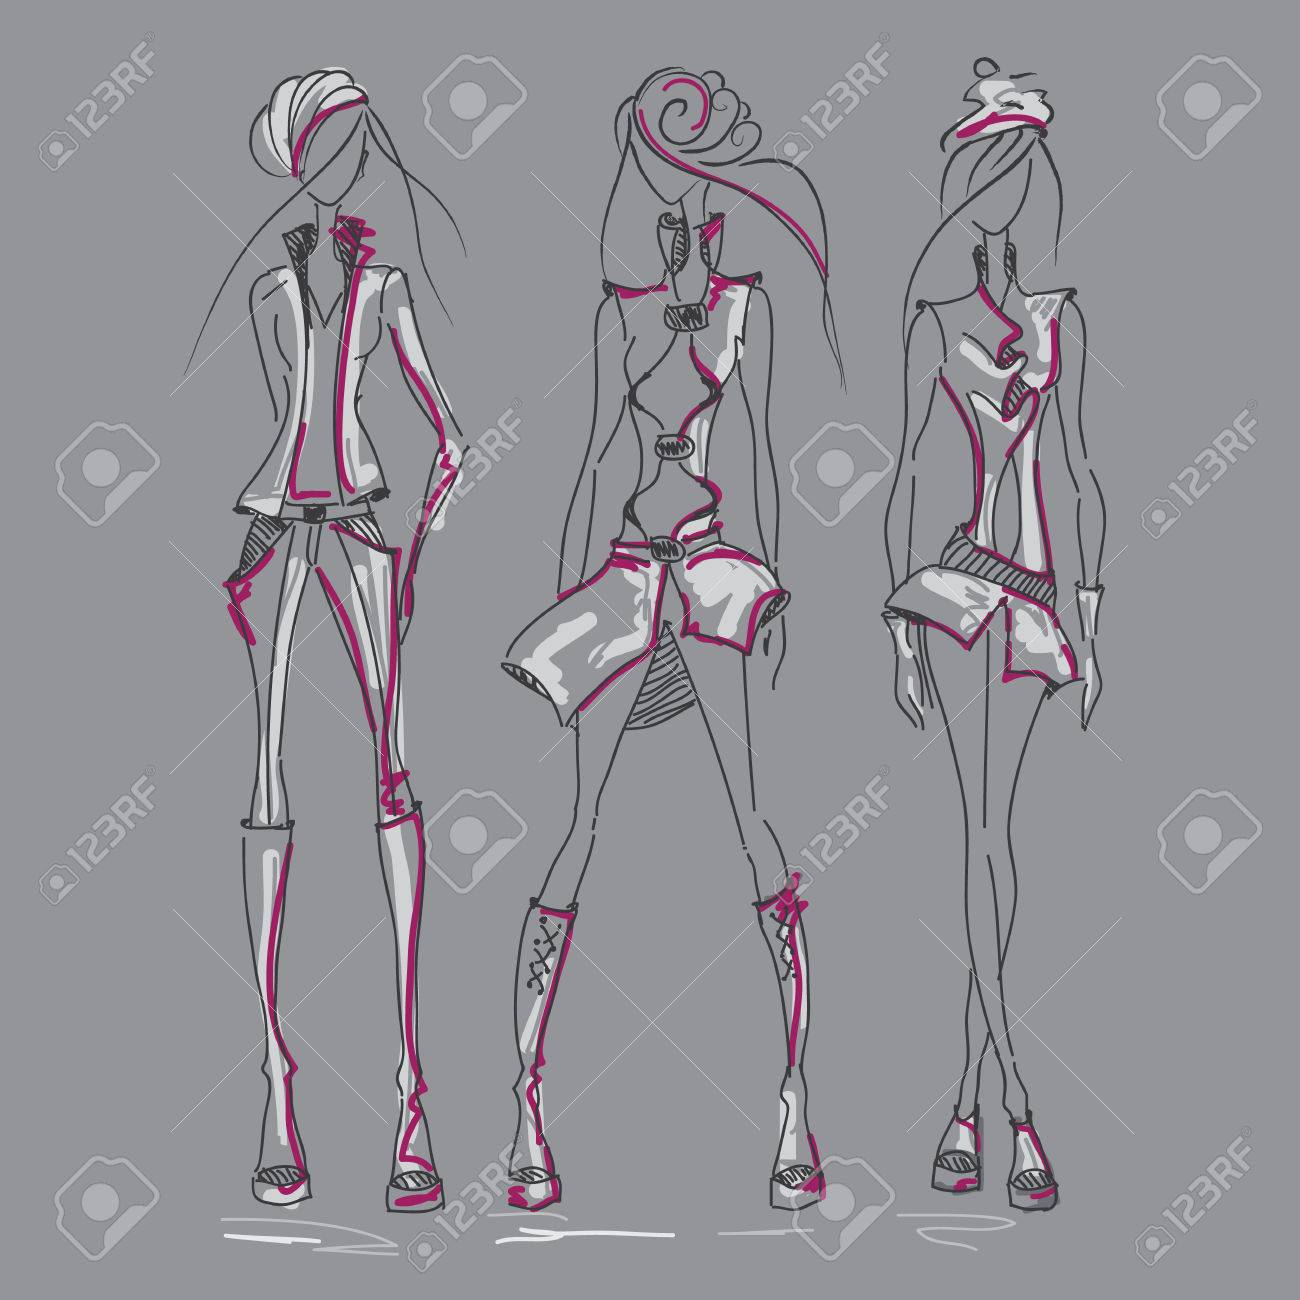 Vector sketch silhouette women vector collection of clothing dress pencil sketch vector fashion outline design of clothing